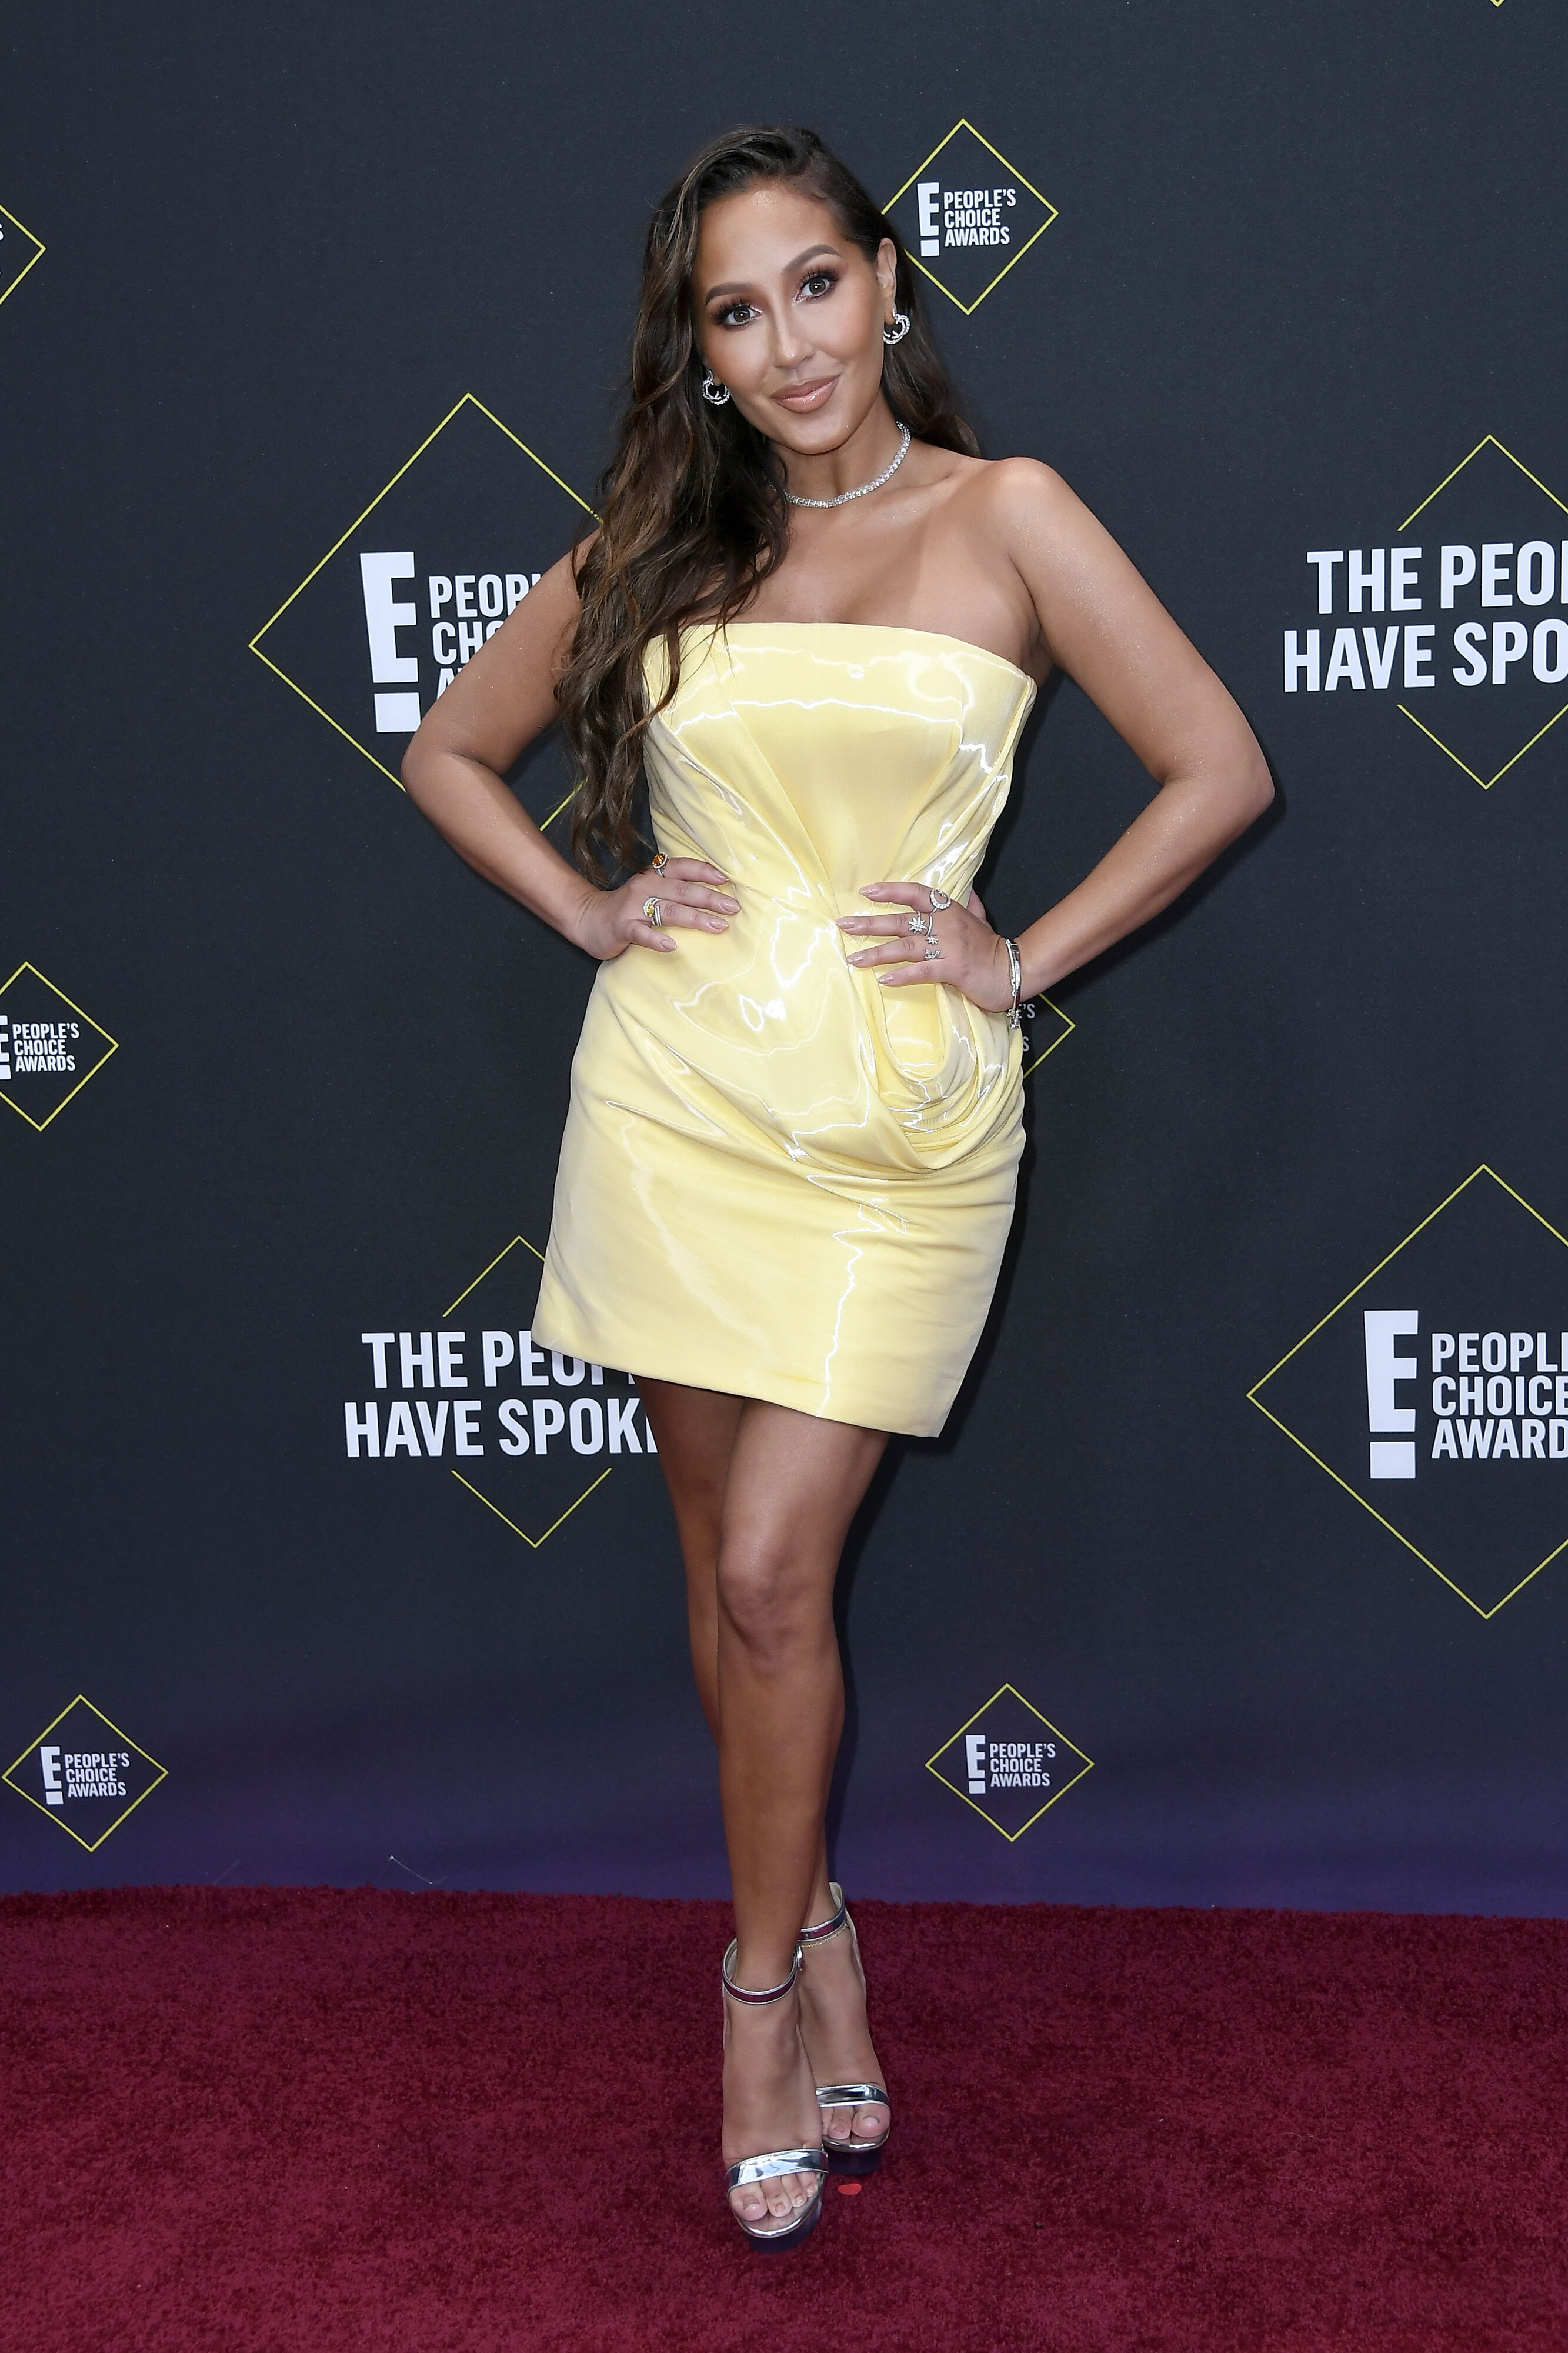 Adrienne Houghton attends the 2019 E! People's Choice Awards at Barker Hangar. | Source: Getty Images